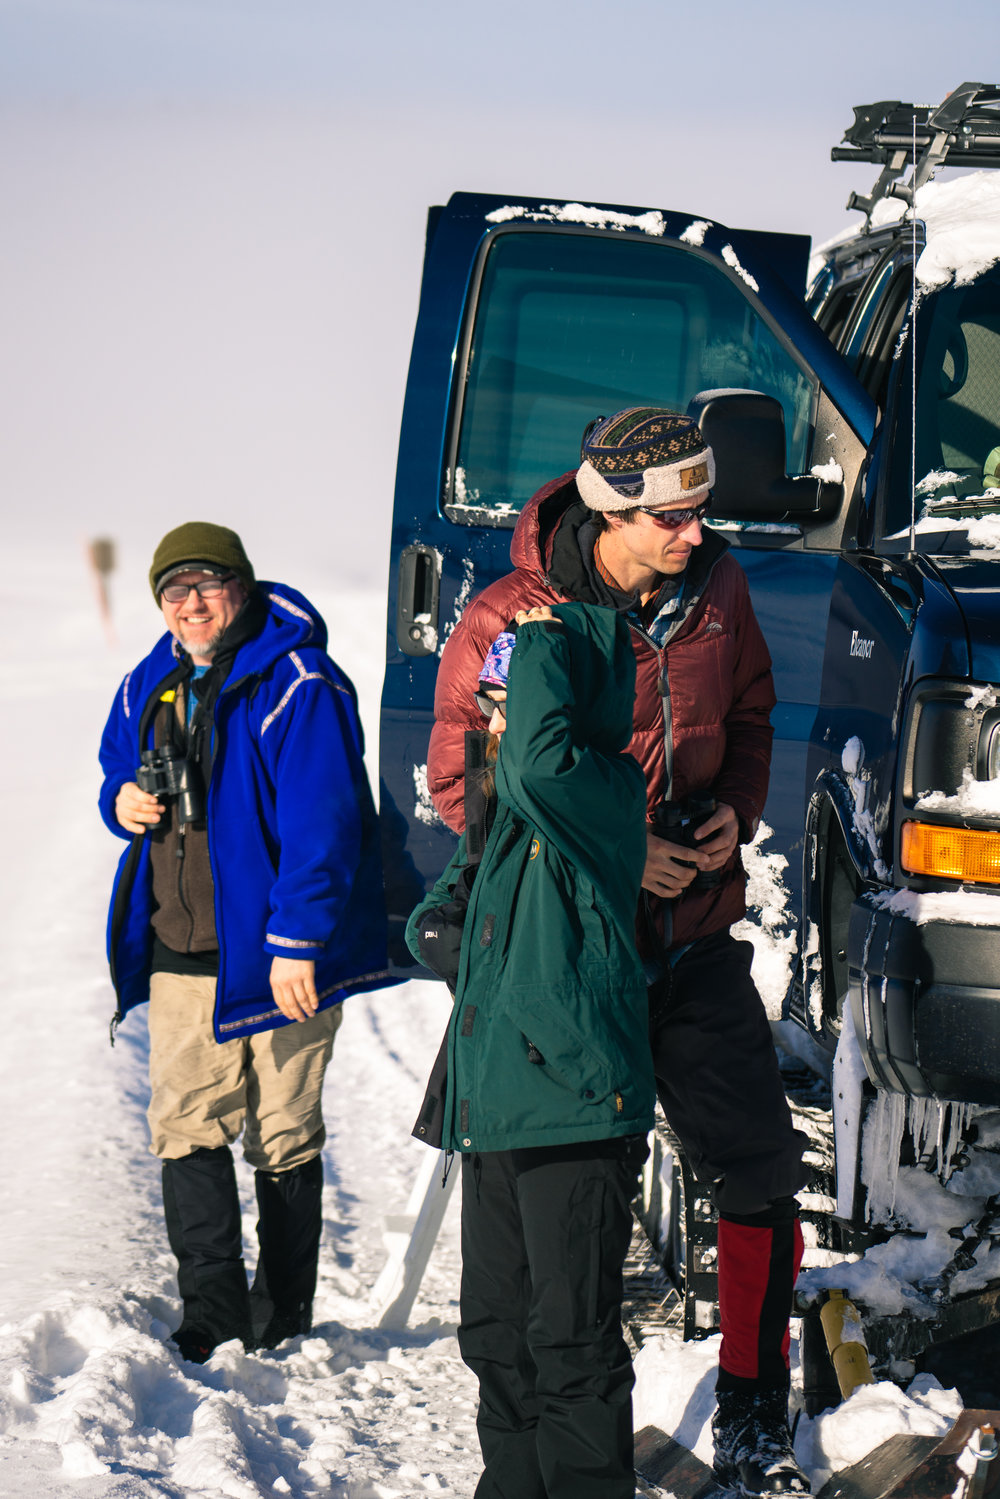 Unloading from Yellowstone Expeditions' snowcoach in Yellowstone National Park.